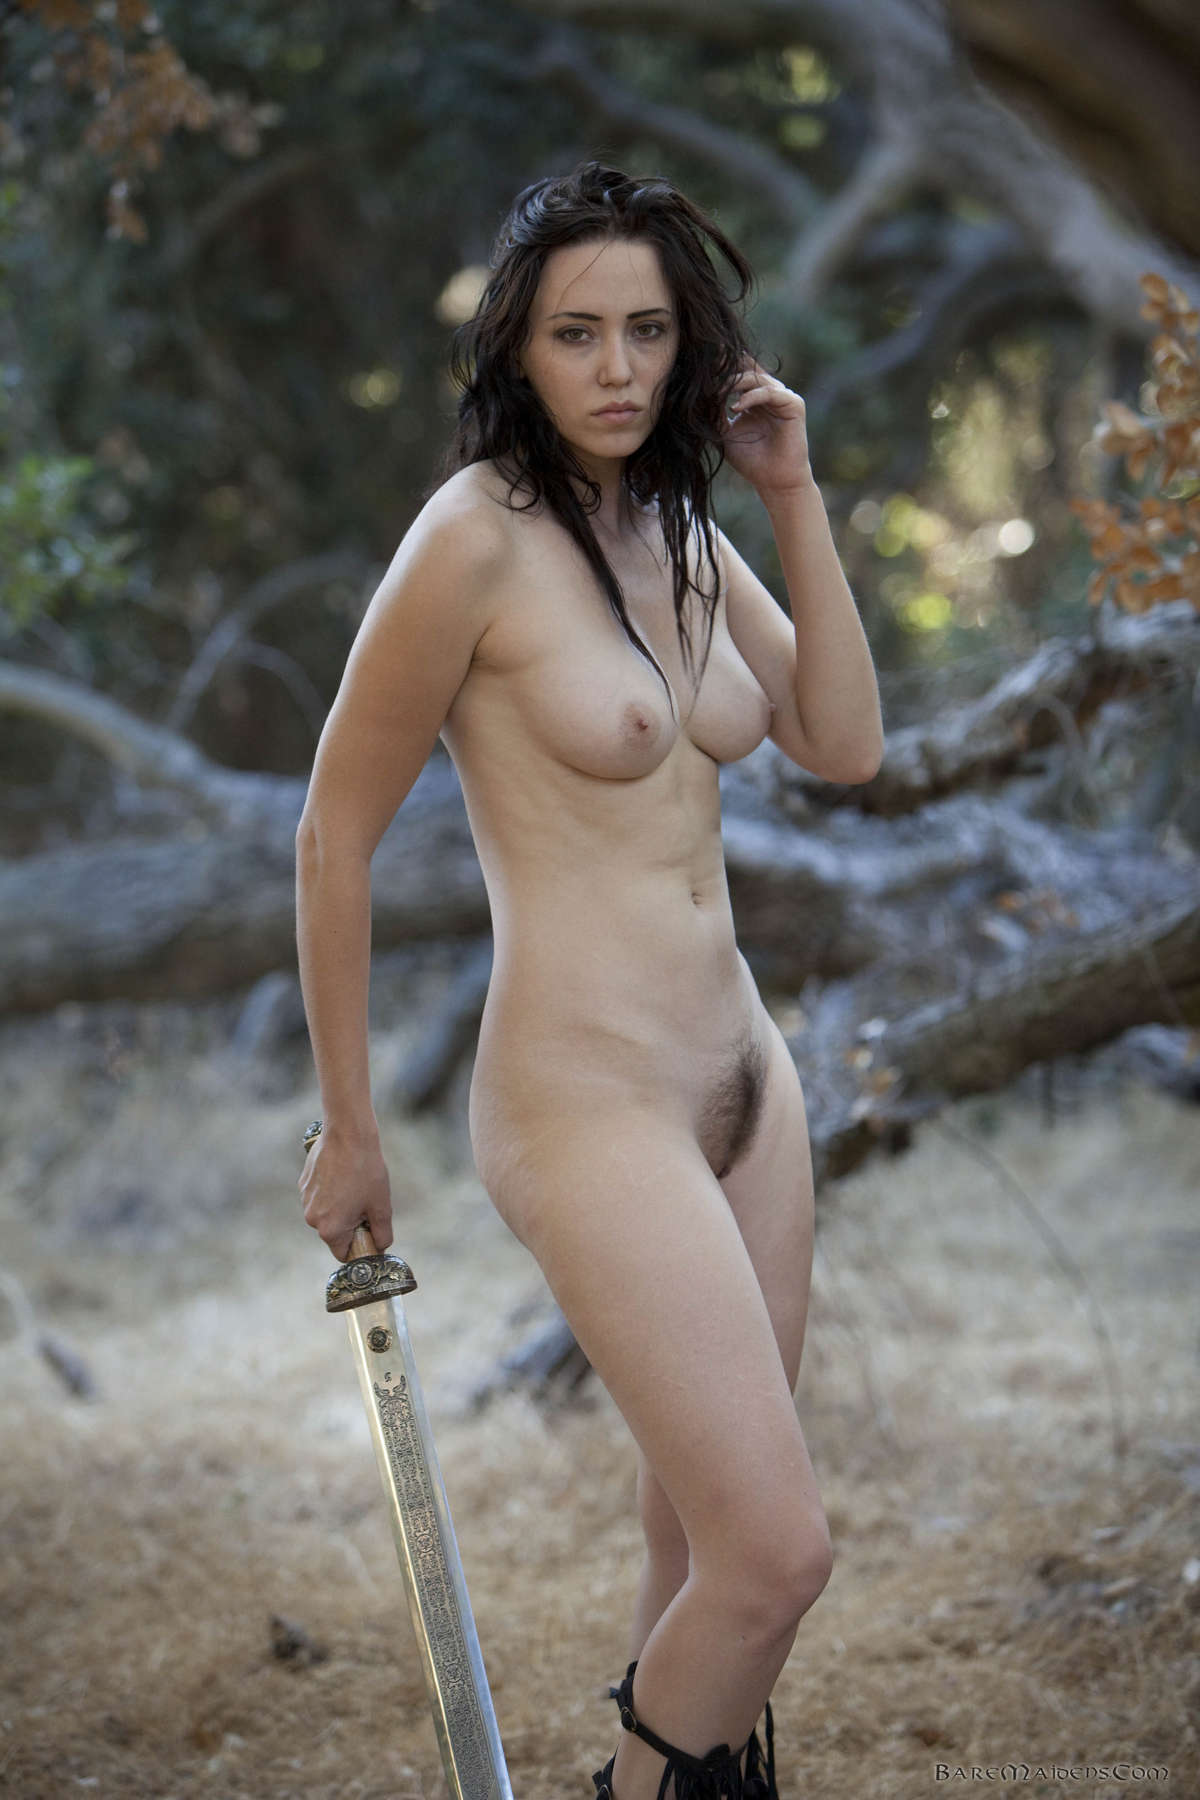 Outdoor naked orgie pics